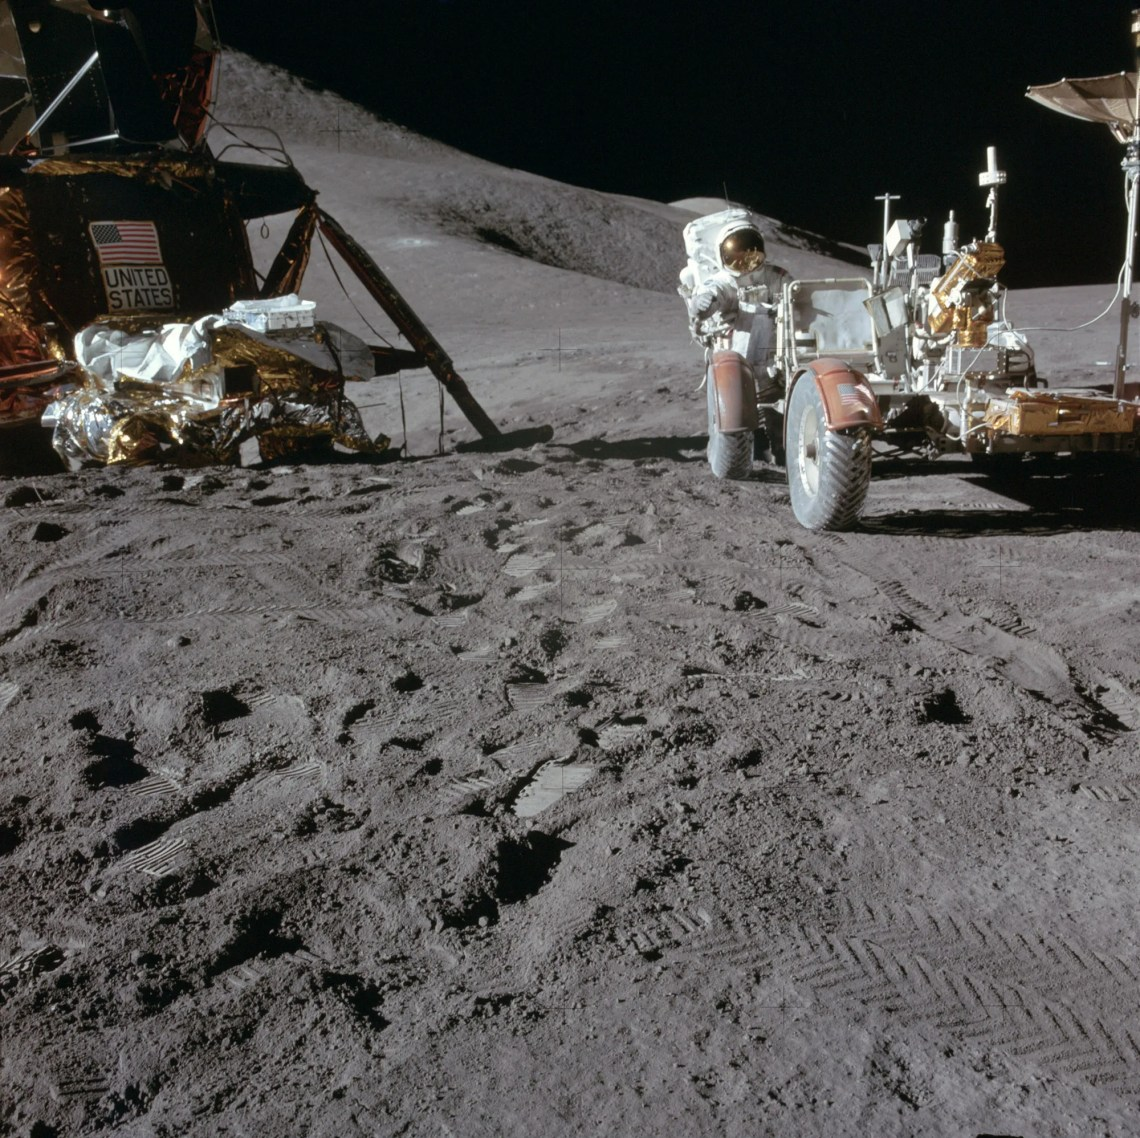 Jim Irwin works at the Lunar Roving Vehicle during the first EVA at the Hadley-Apennine landing site. A portion of the Falcon Lunar Module is on the left. The undeployed Laser Ranging Retro Reflector LR-3 lies atop the LM's Modular Equipment Stowage Assembly MESA. Credit: NASA via Retro Space Images